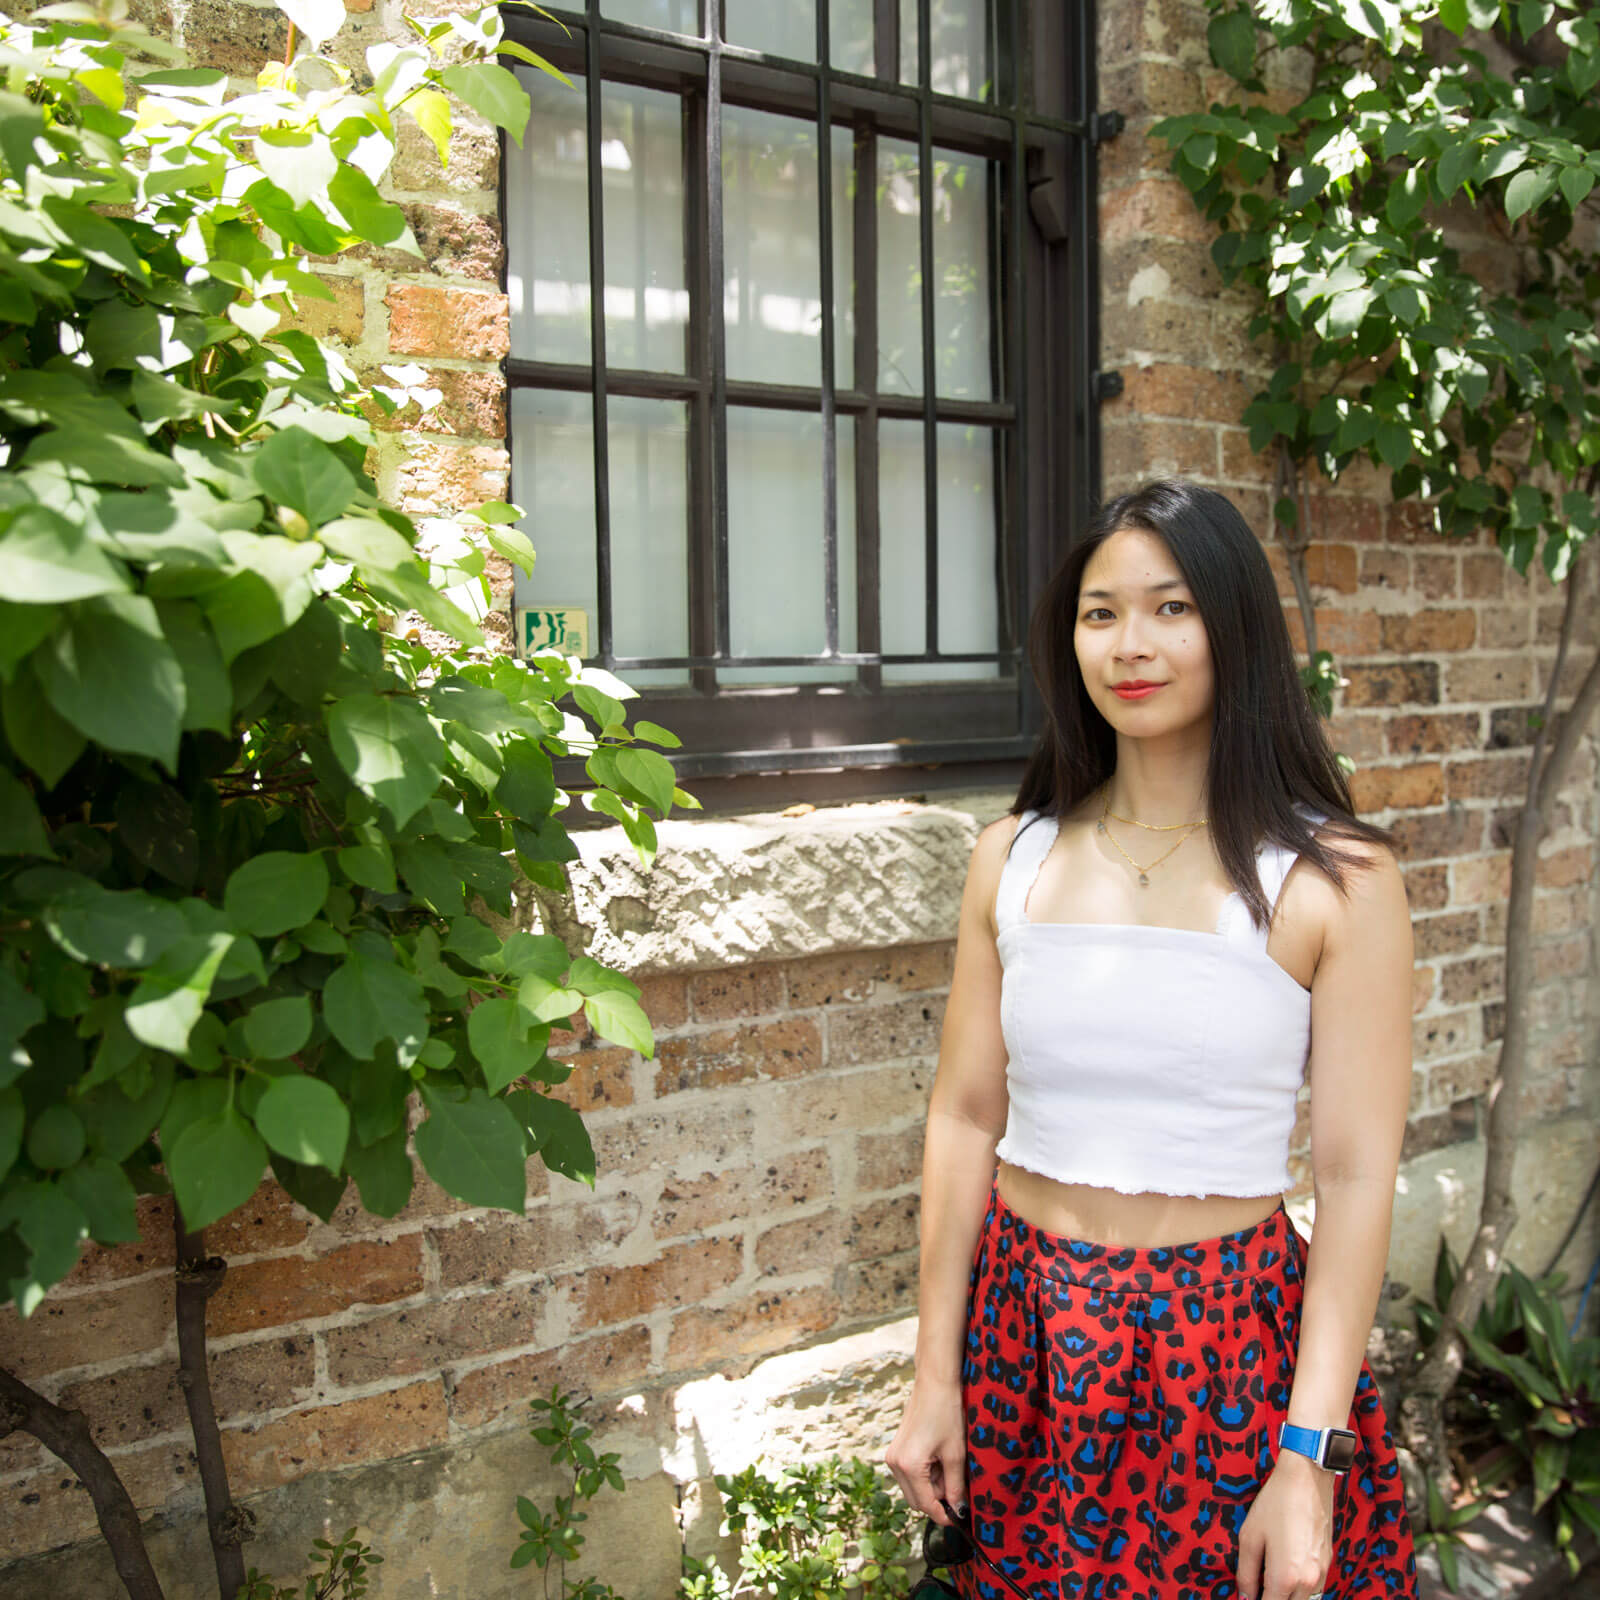 The same woman from other images on this page, in the same outfit. She is standing by a closed window in the brick wall of a building. There are some growing vines on the wall.